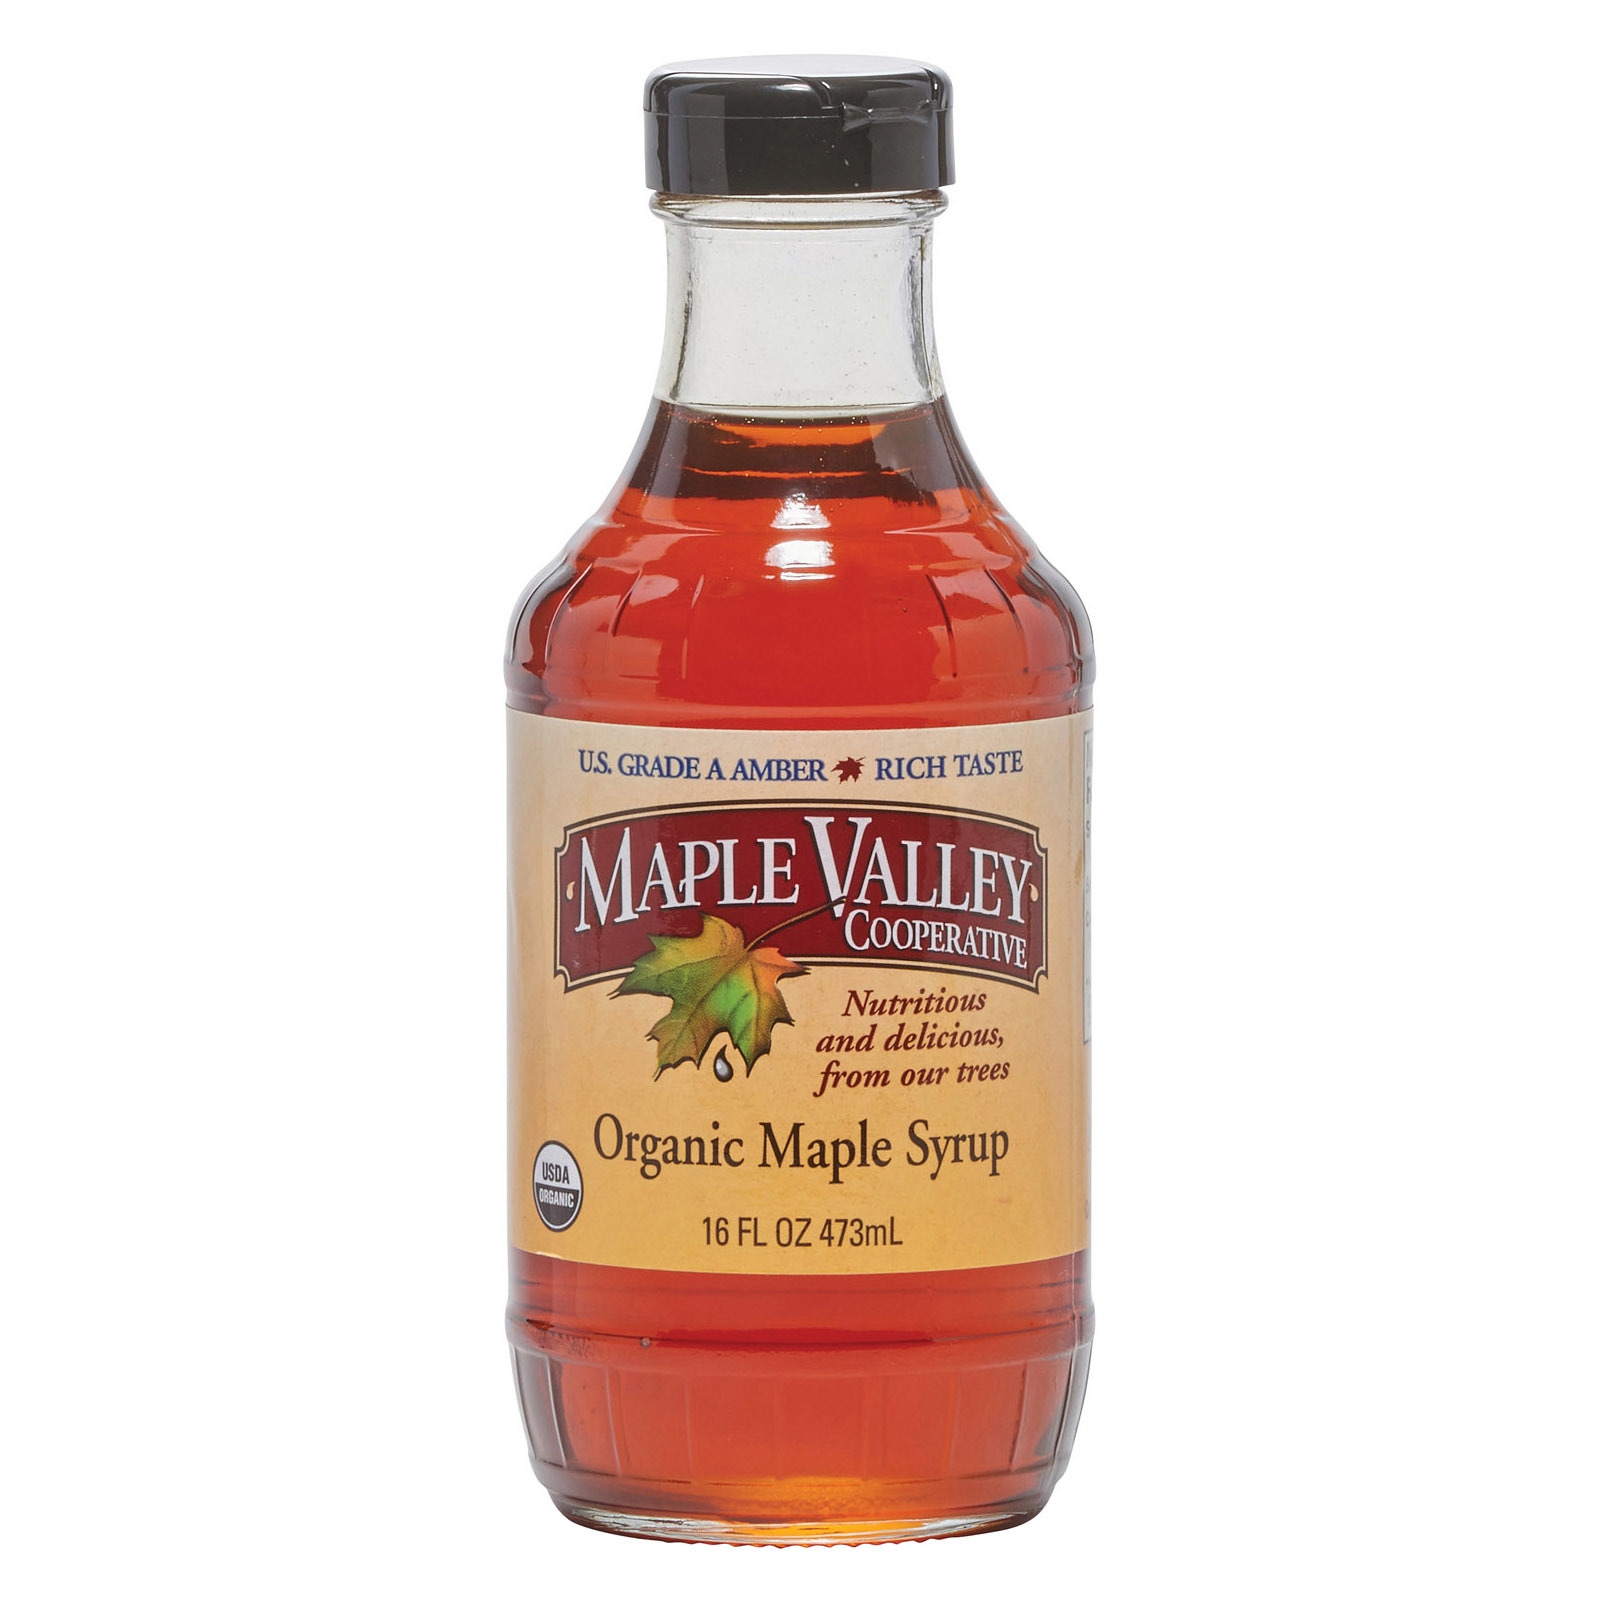 Maple Valley Cooperative Organic Maple Syrup - Grade A - Case of 6 - 16 fl oz